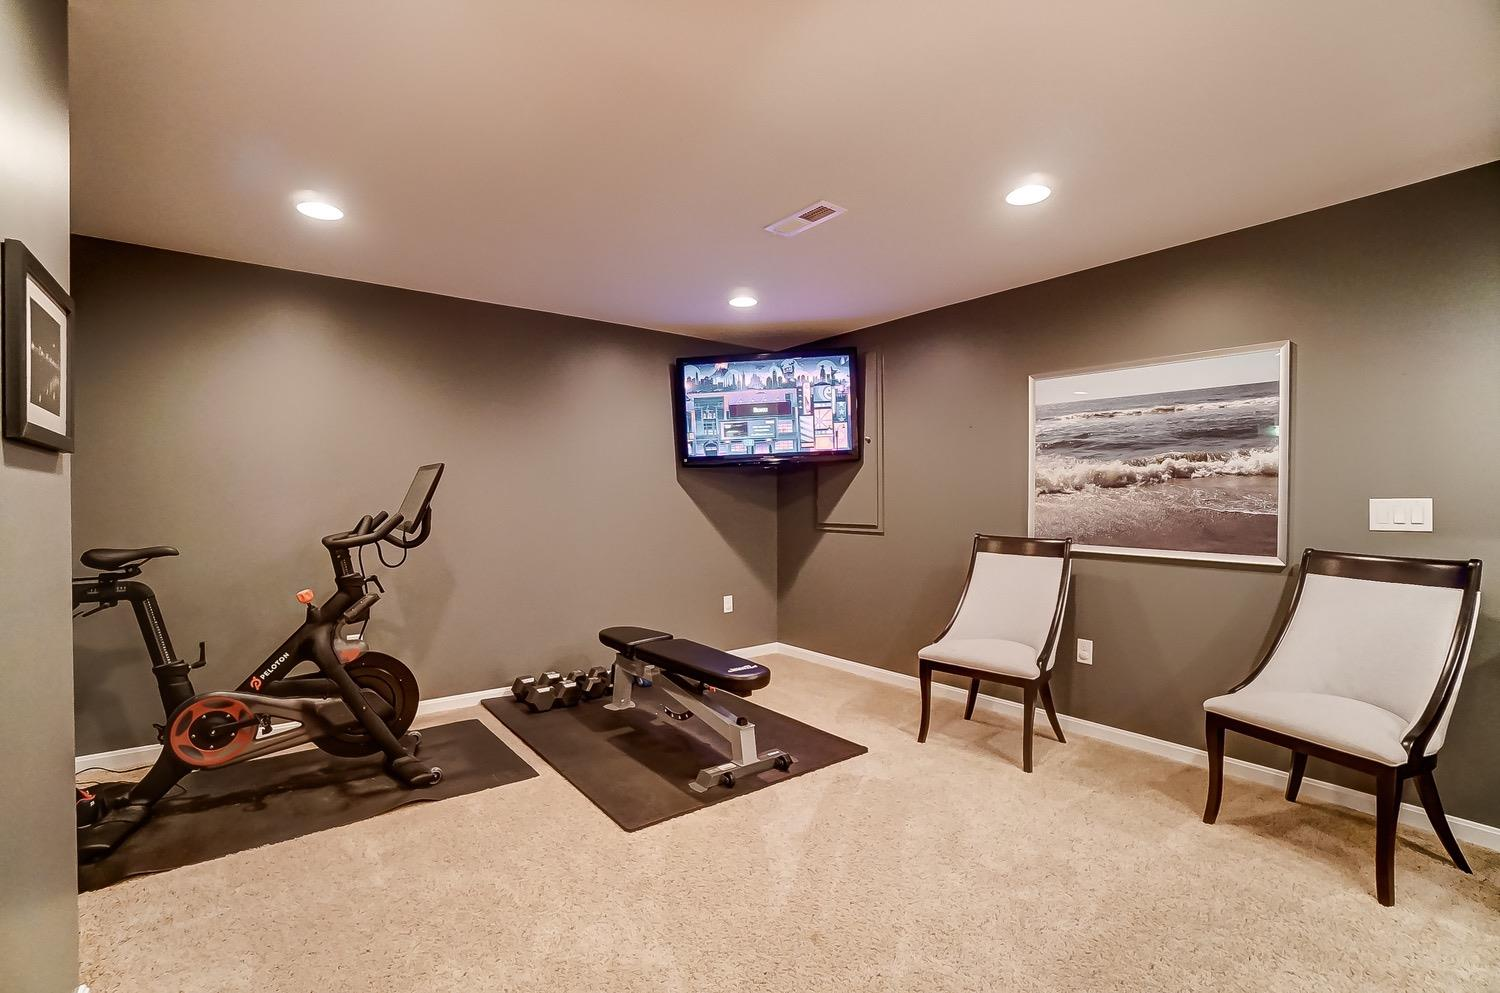 Extra space for exercise area, game table or play area.